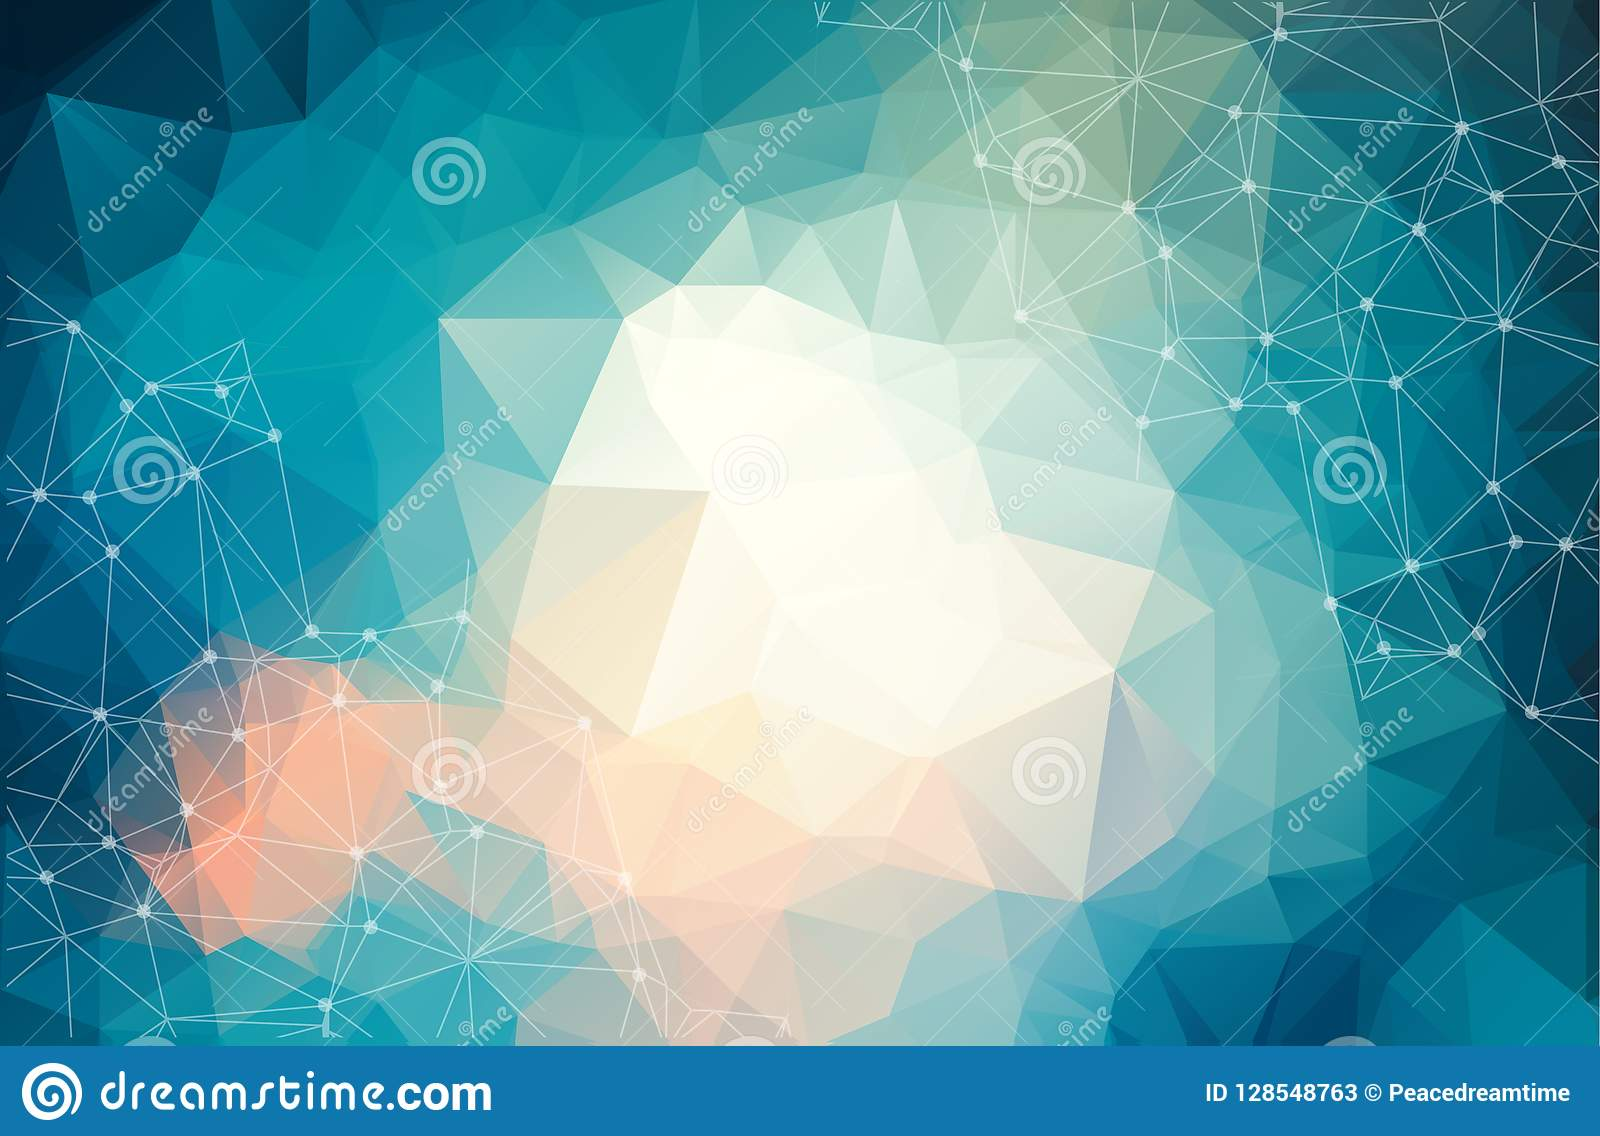 Abstract futuristic background with dots and lines, molecular particles and atoms, polygonal linear digital texture, technological